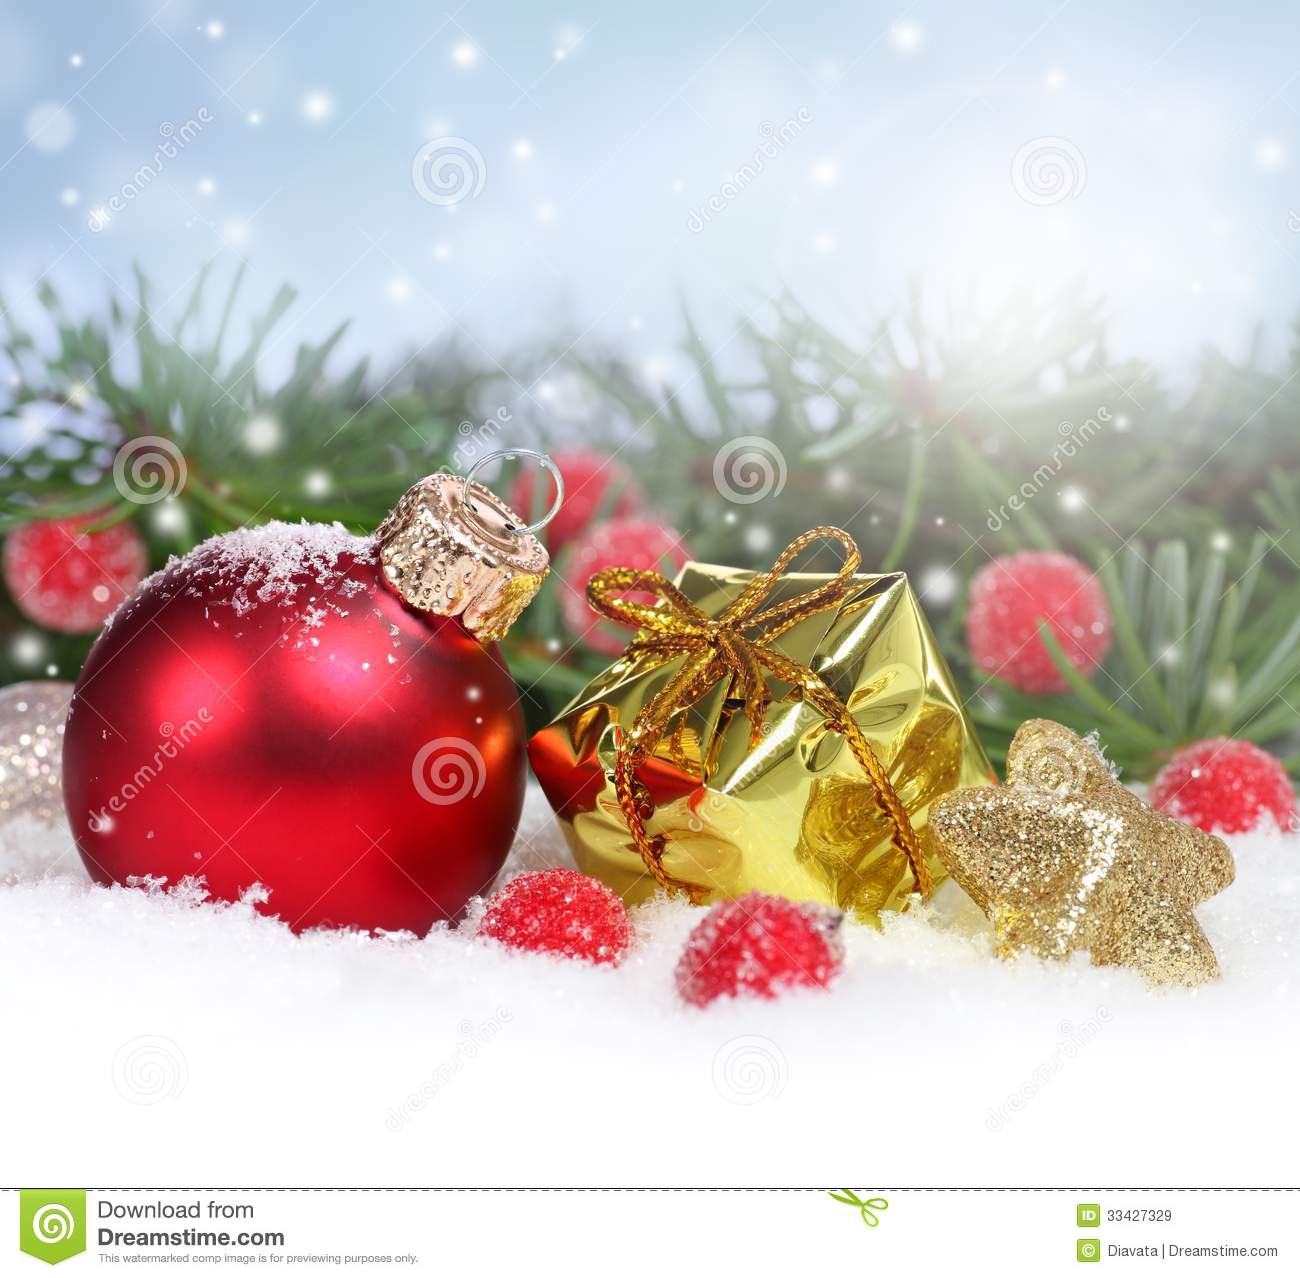 Christmas Ornament Box Royalty Free Stock Photo - Image: 10335365